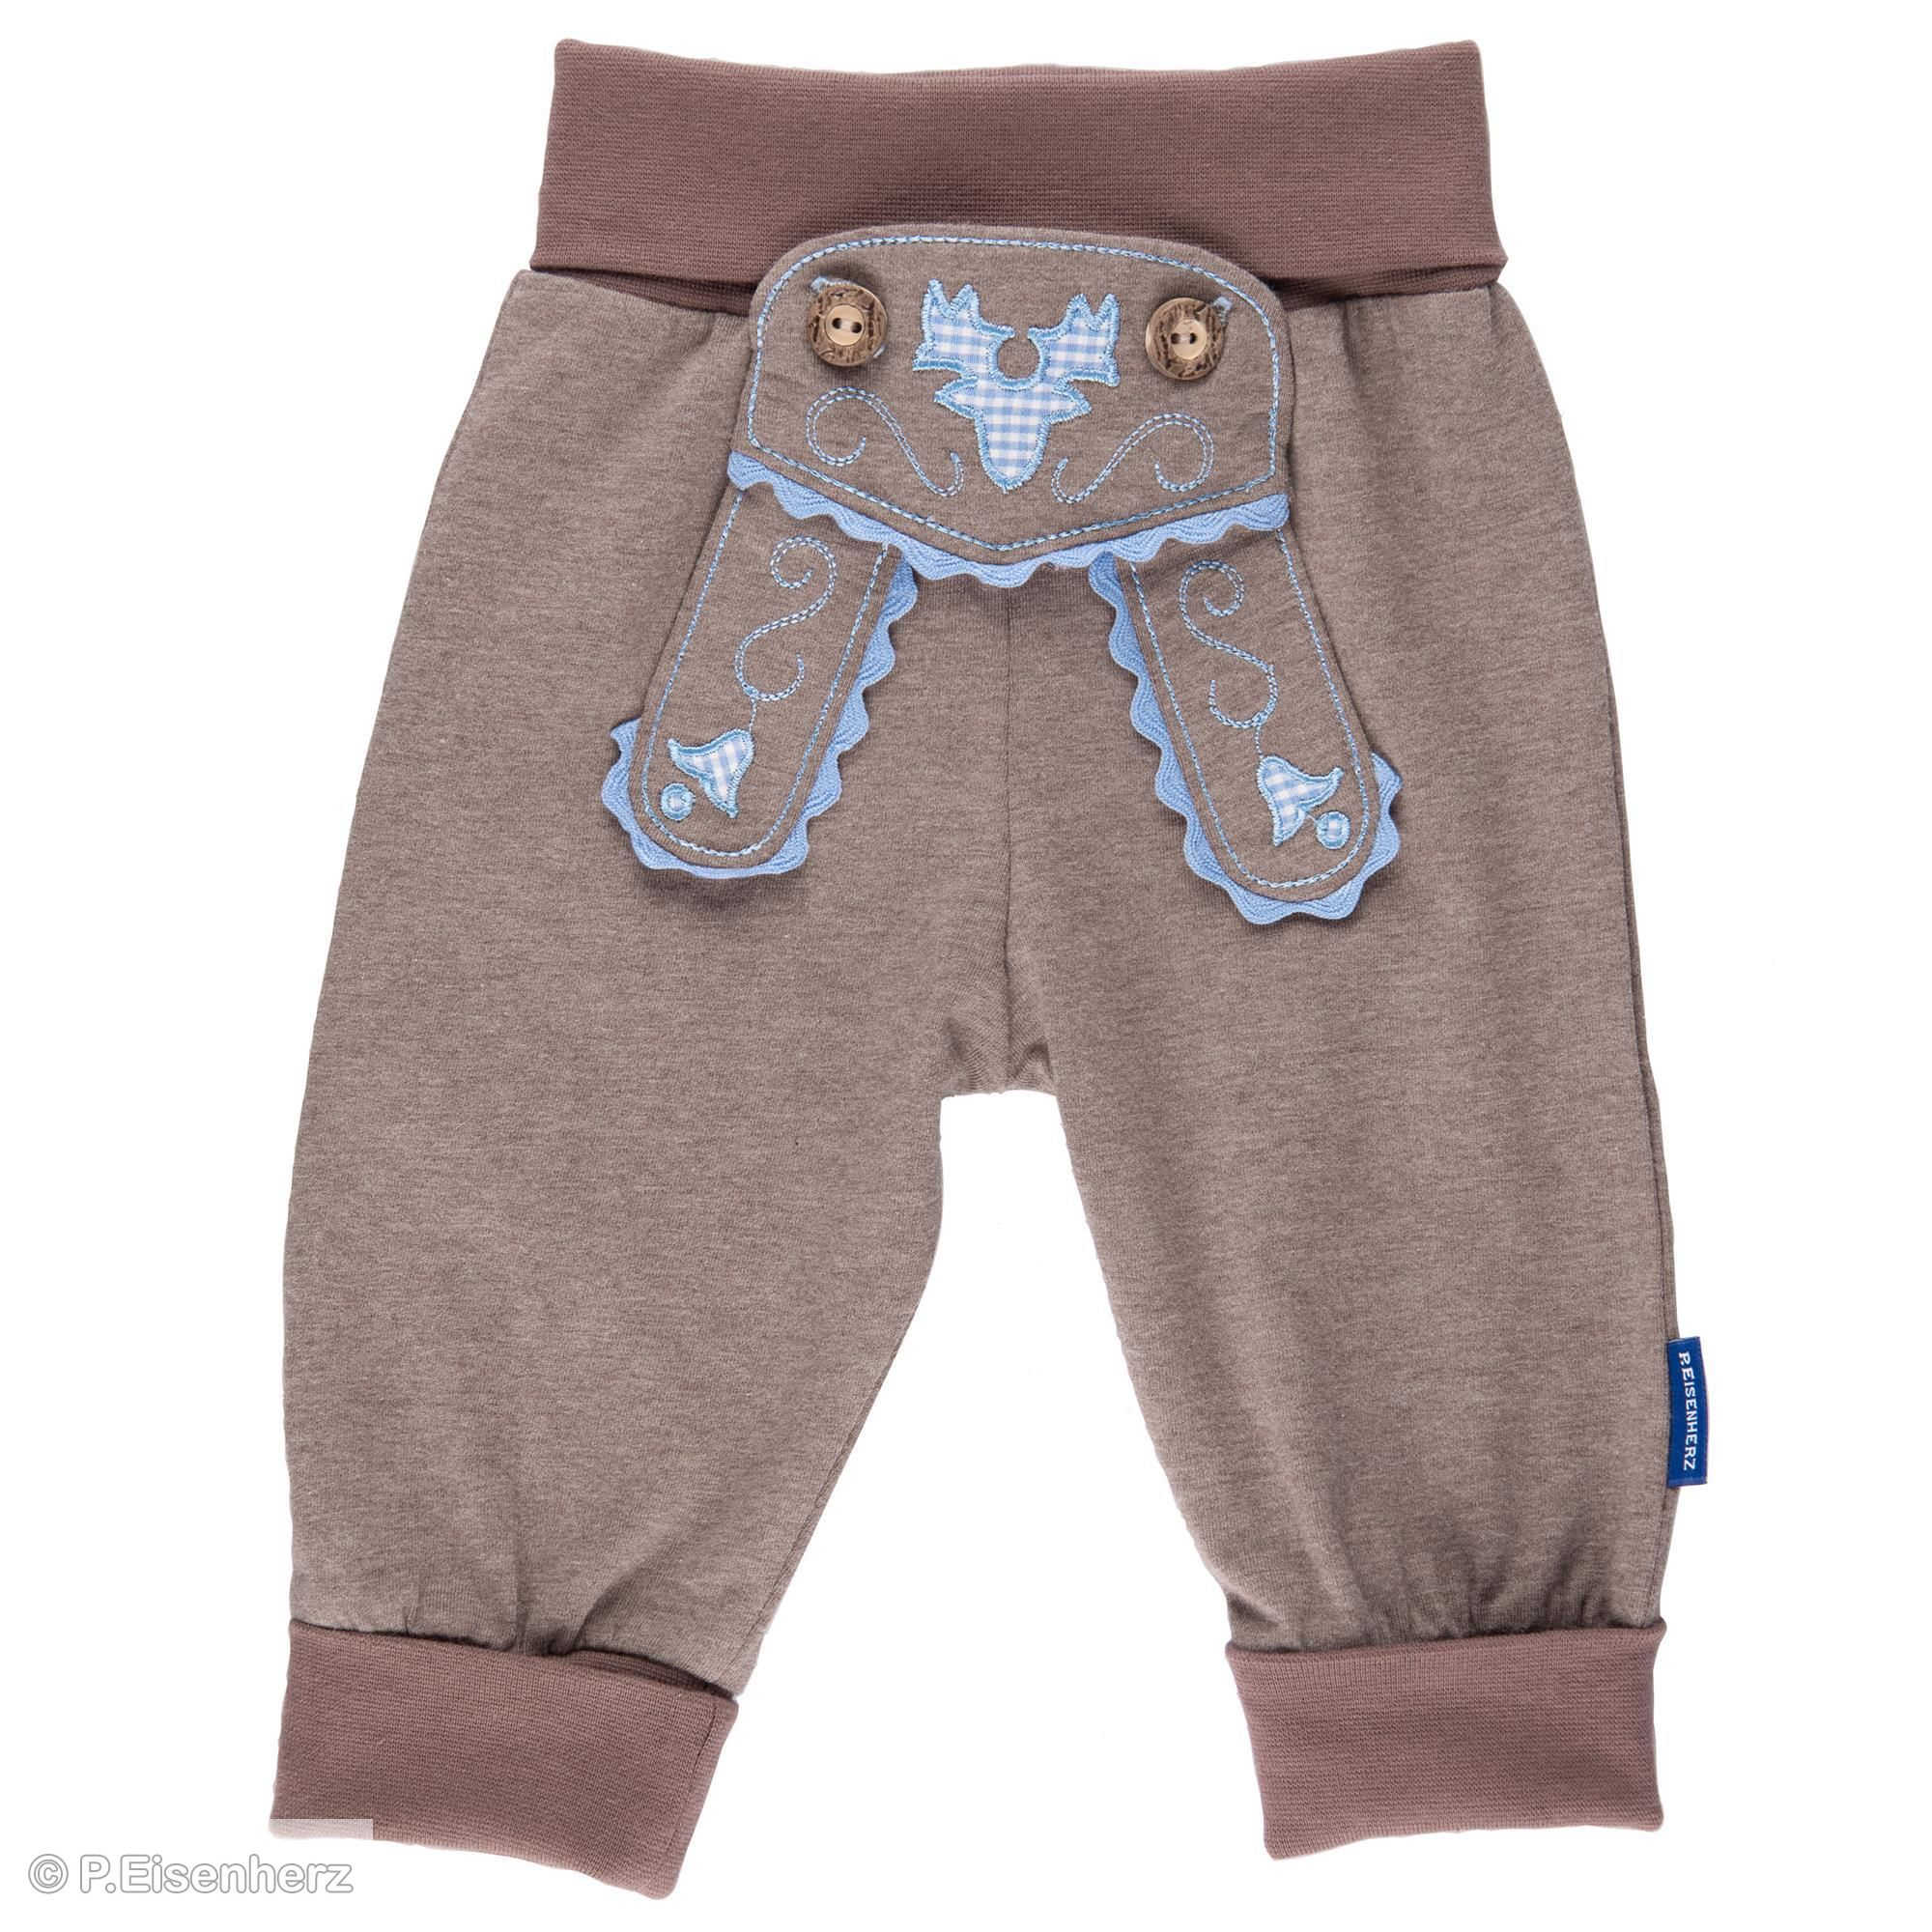 babyhose im lederhosenstil mit stickerei in hellblau 29 90. Black Bedroom Furniture Sets. Home Design Ideas